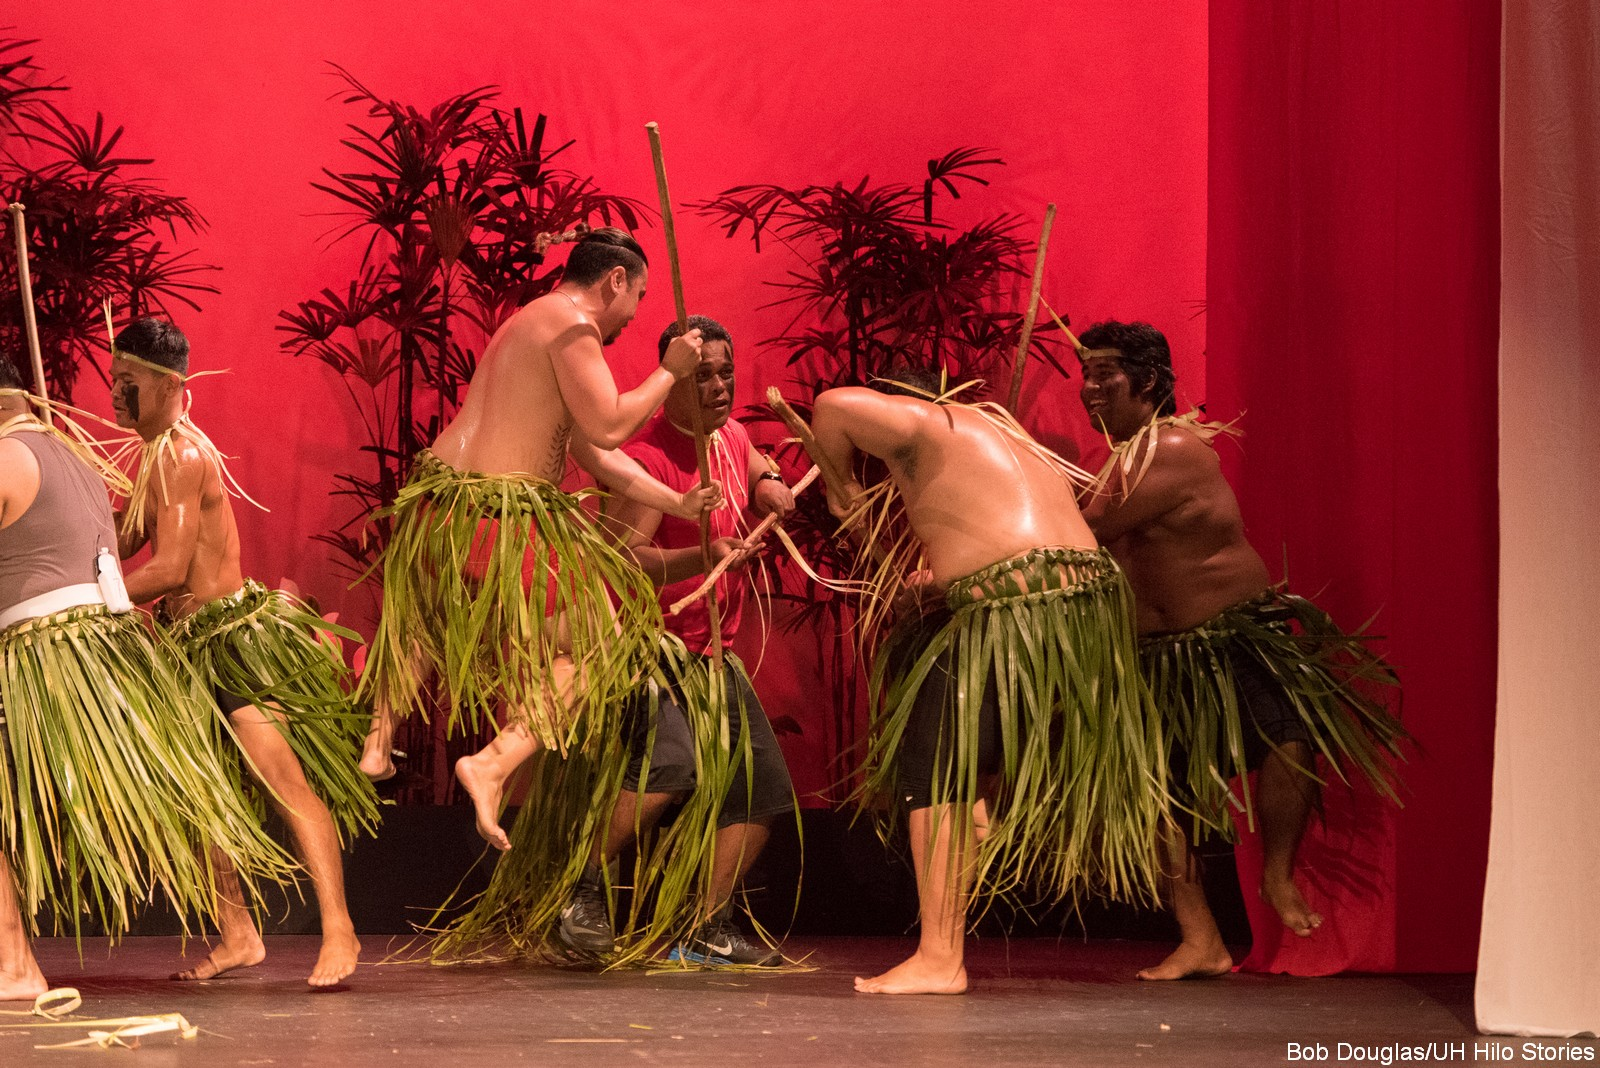 Male dancers in leaf skirts holding long sticks.